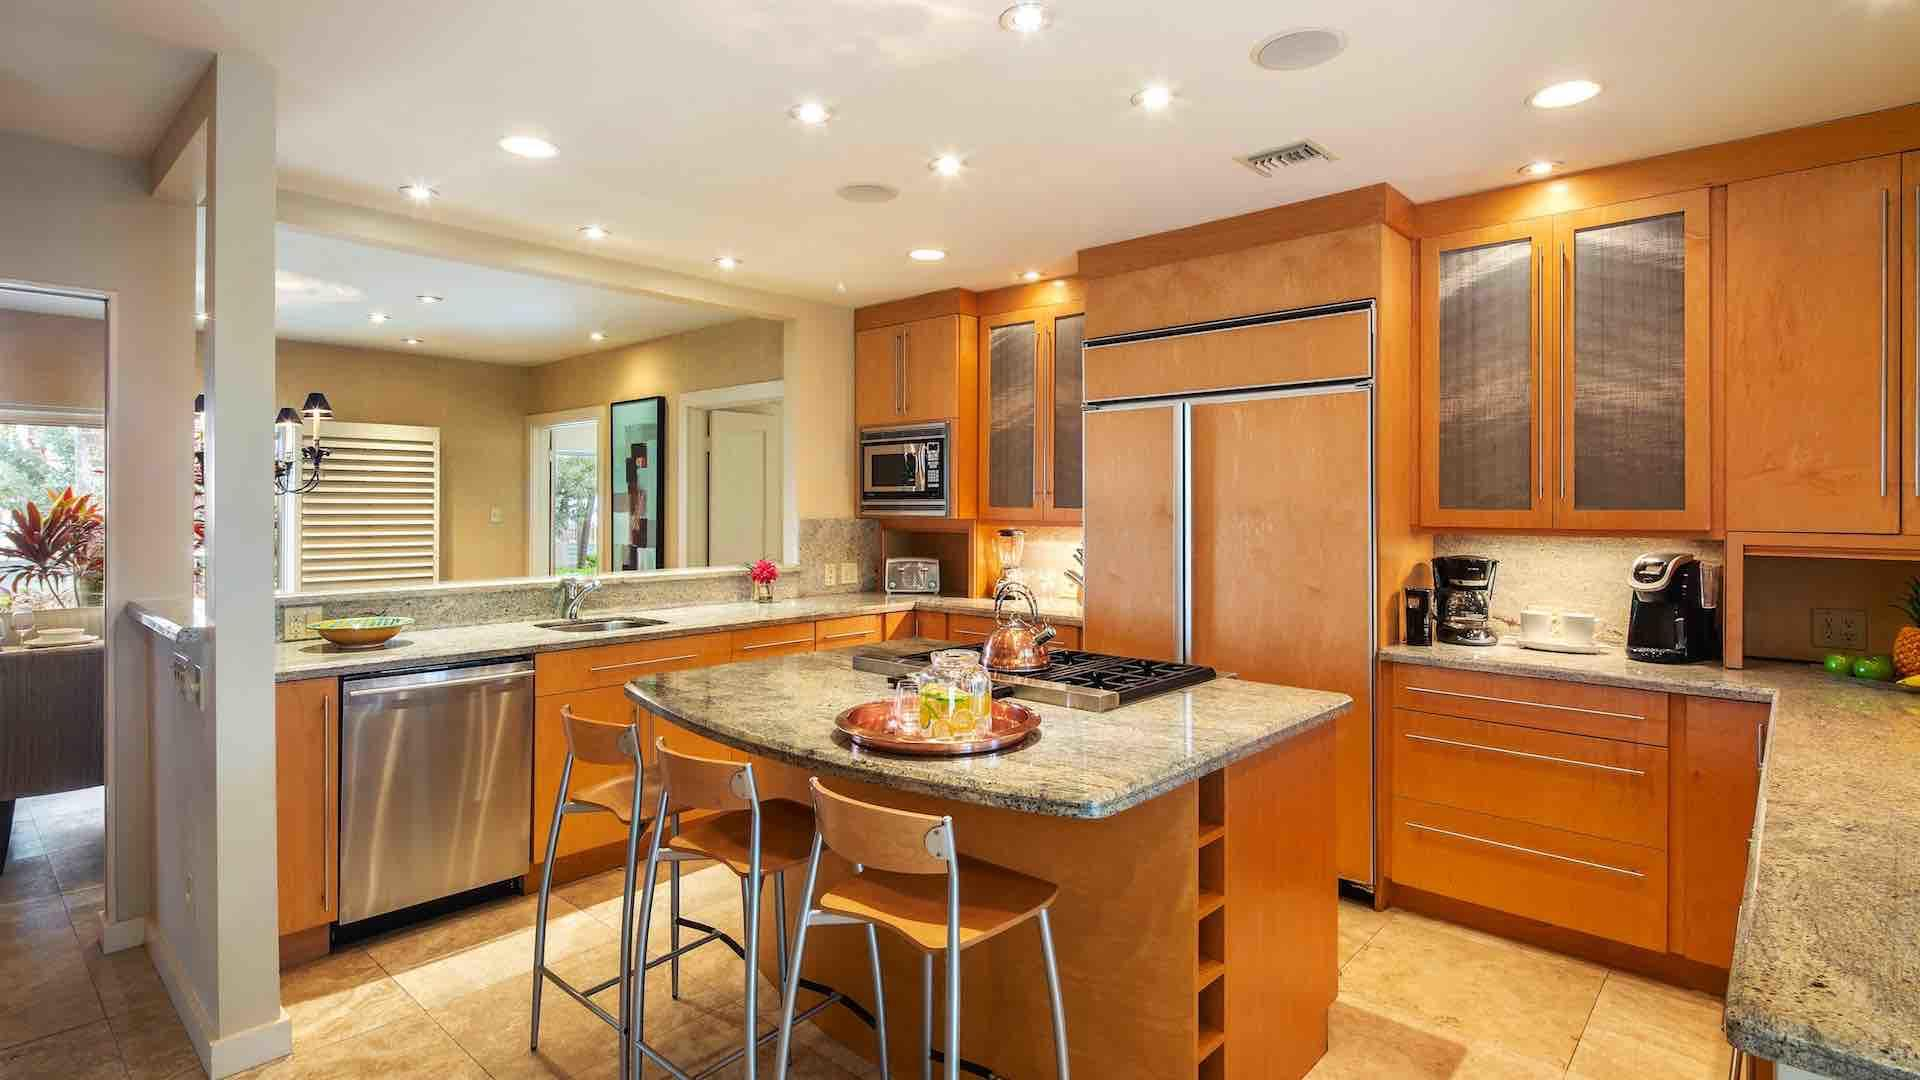 The spacious kitchen has plenty of cabinet and countertop space...